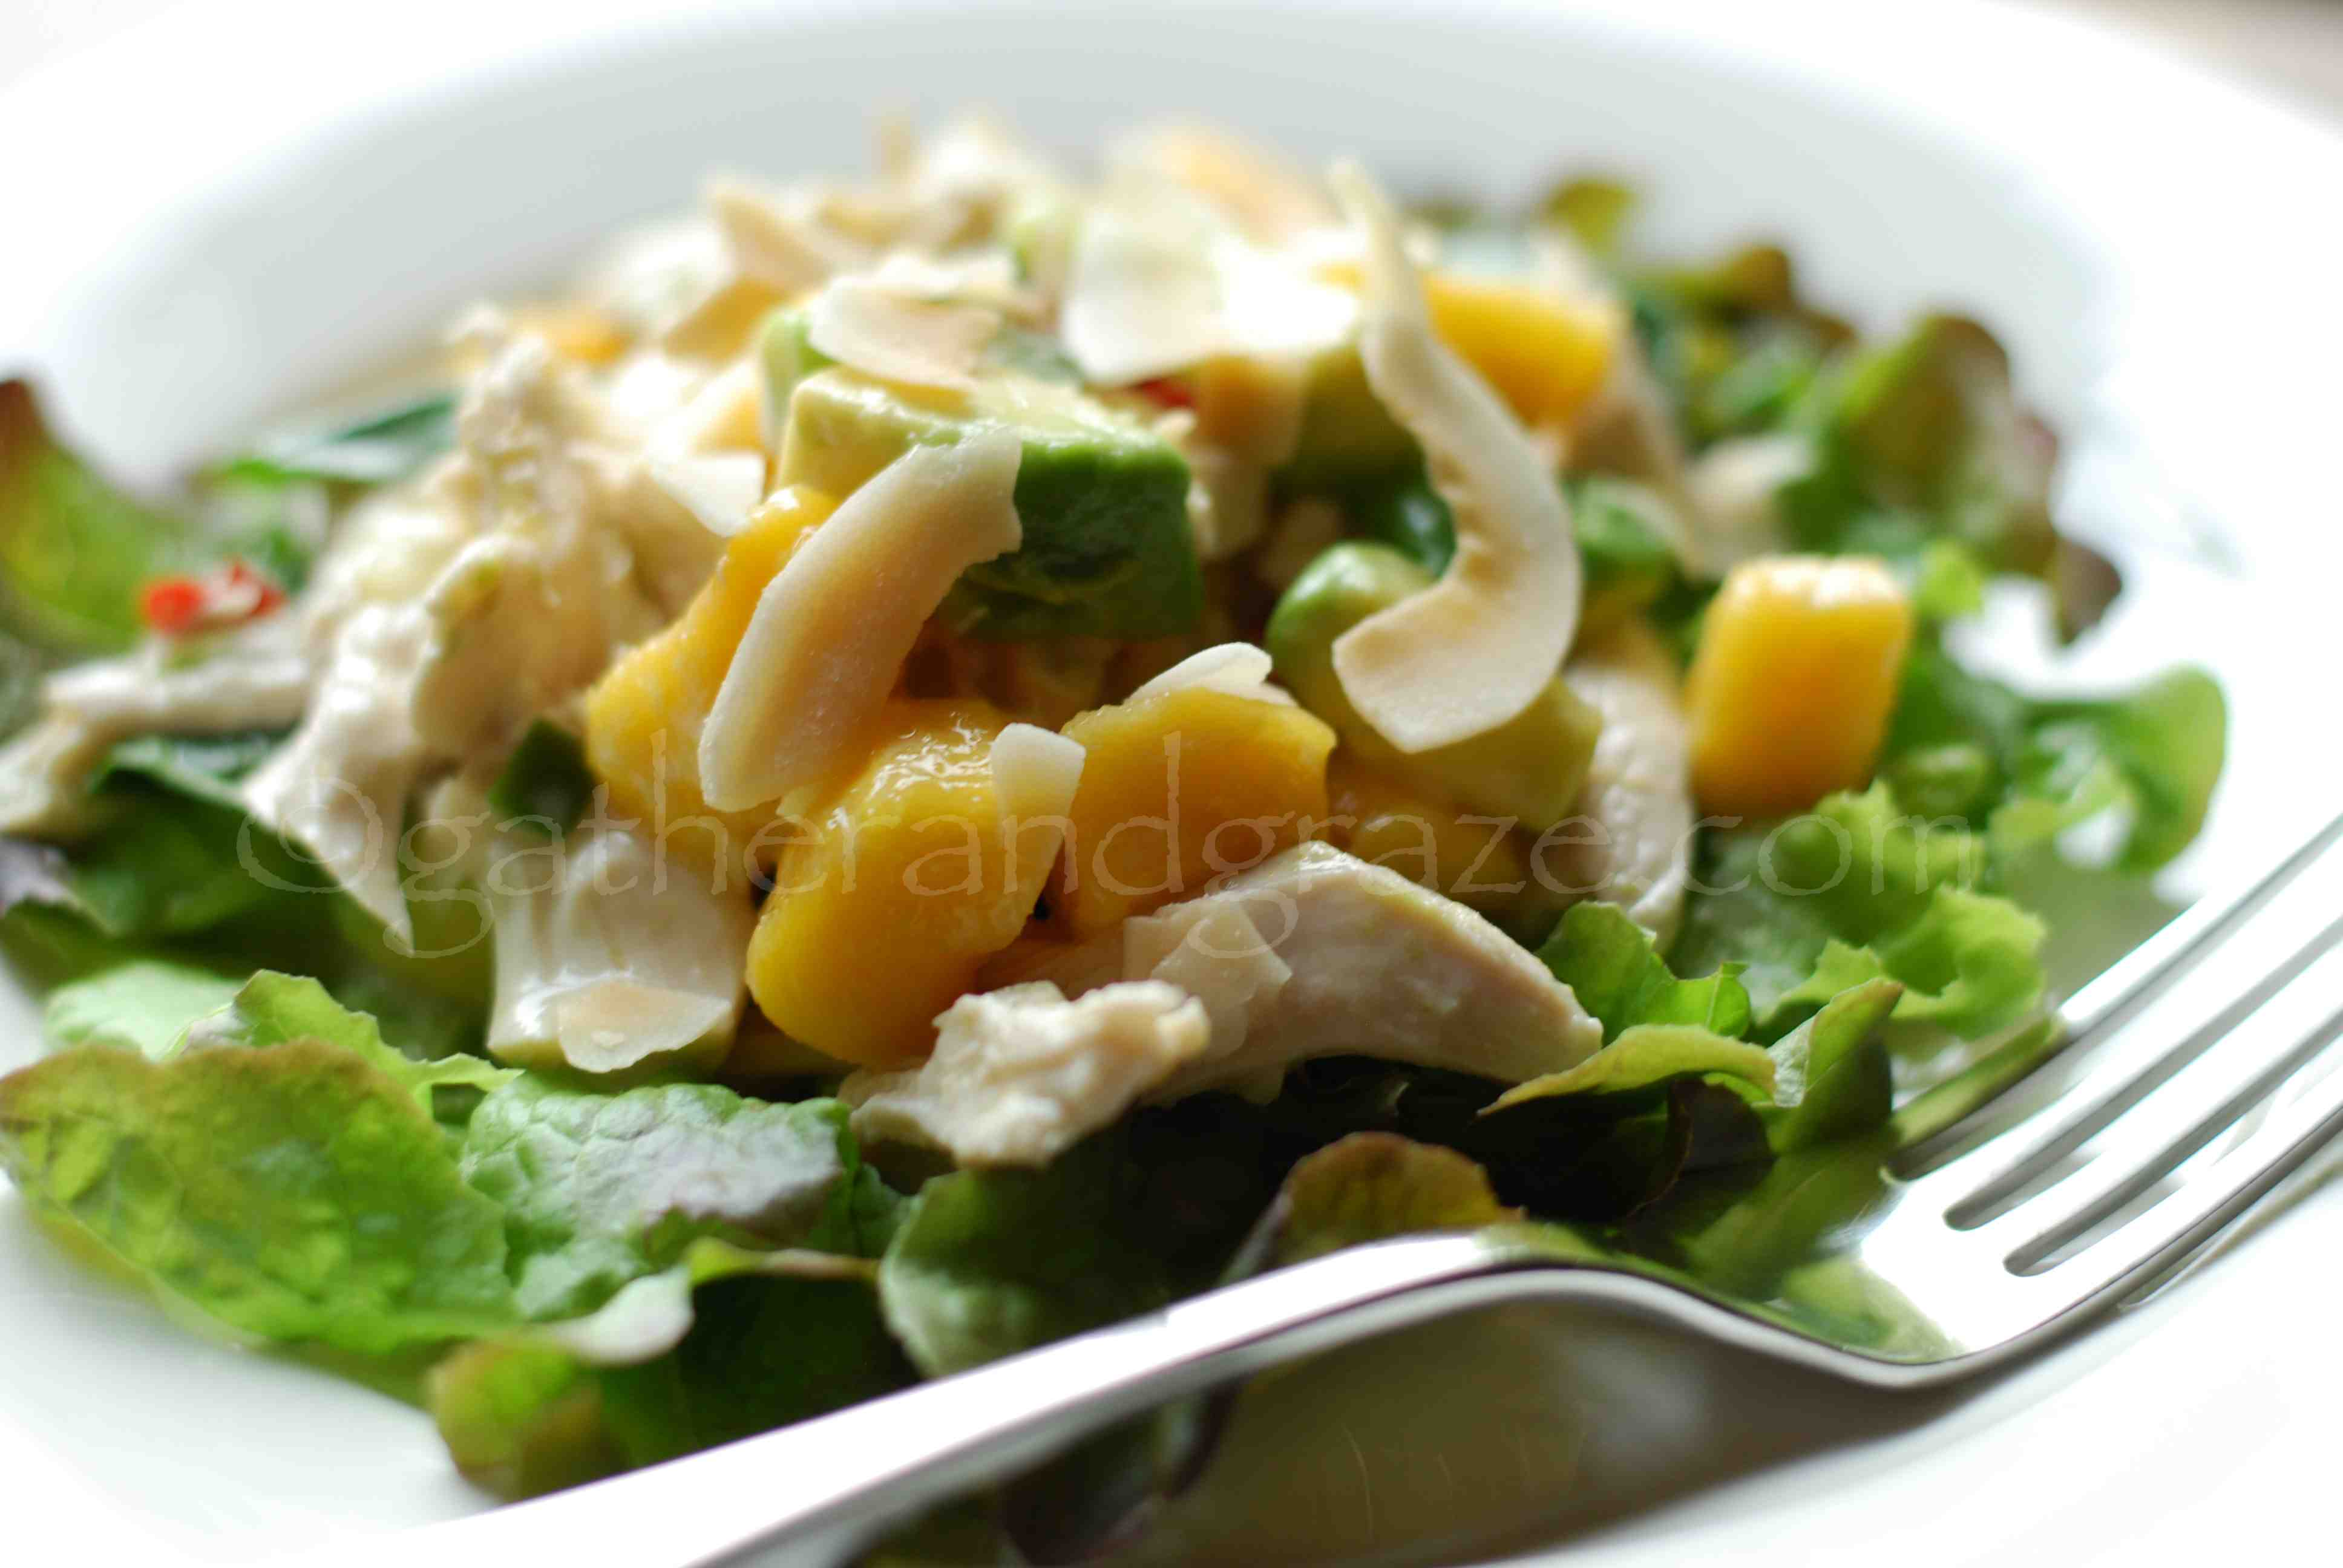 Coconut Poached Chicken with Mango and Avocado Salad   Gather and Graze